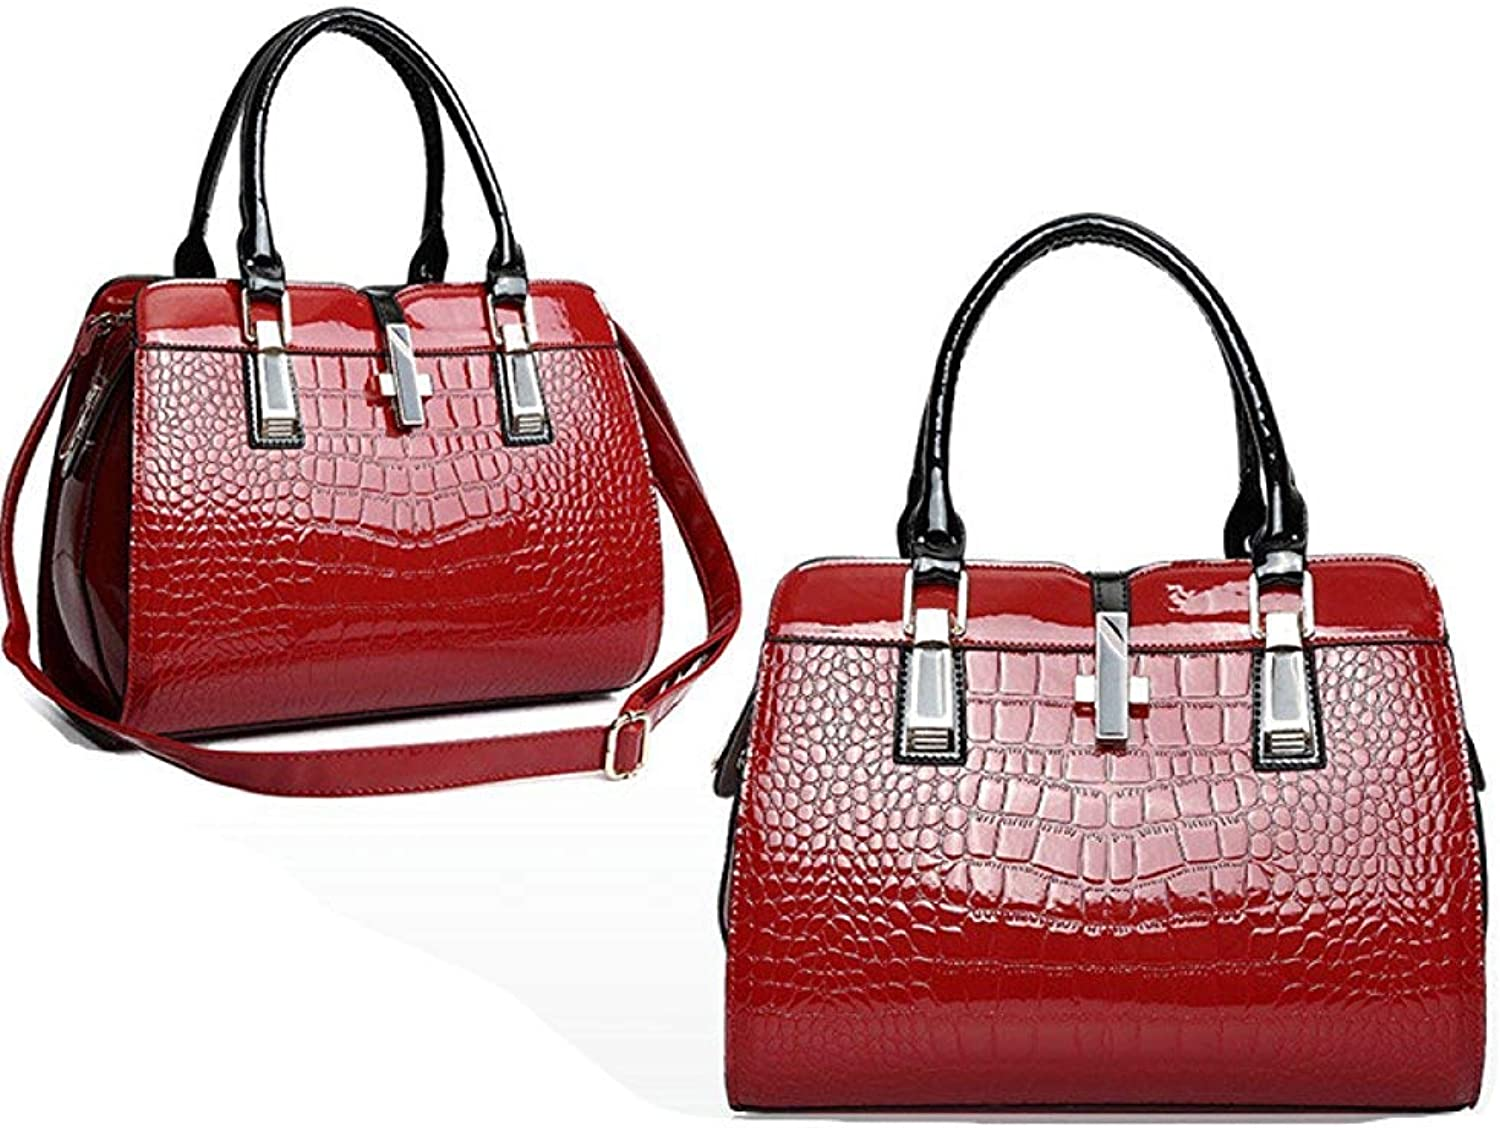 Ladies Handbag Patent Leather Handbags Crocodile Pattern Handbags Set Summer 2018 New Wave Europe and The United States Ladies Shoulder Diagonal Package (color   4, Size   32  25  12cm)